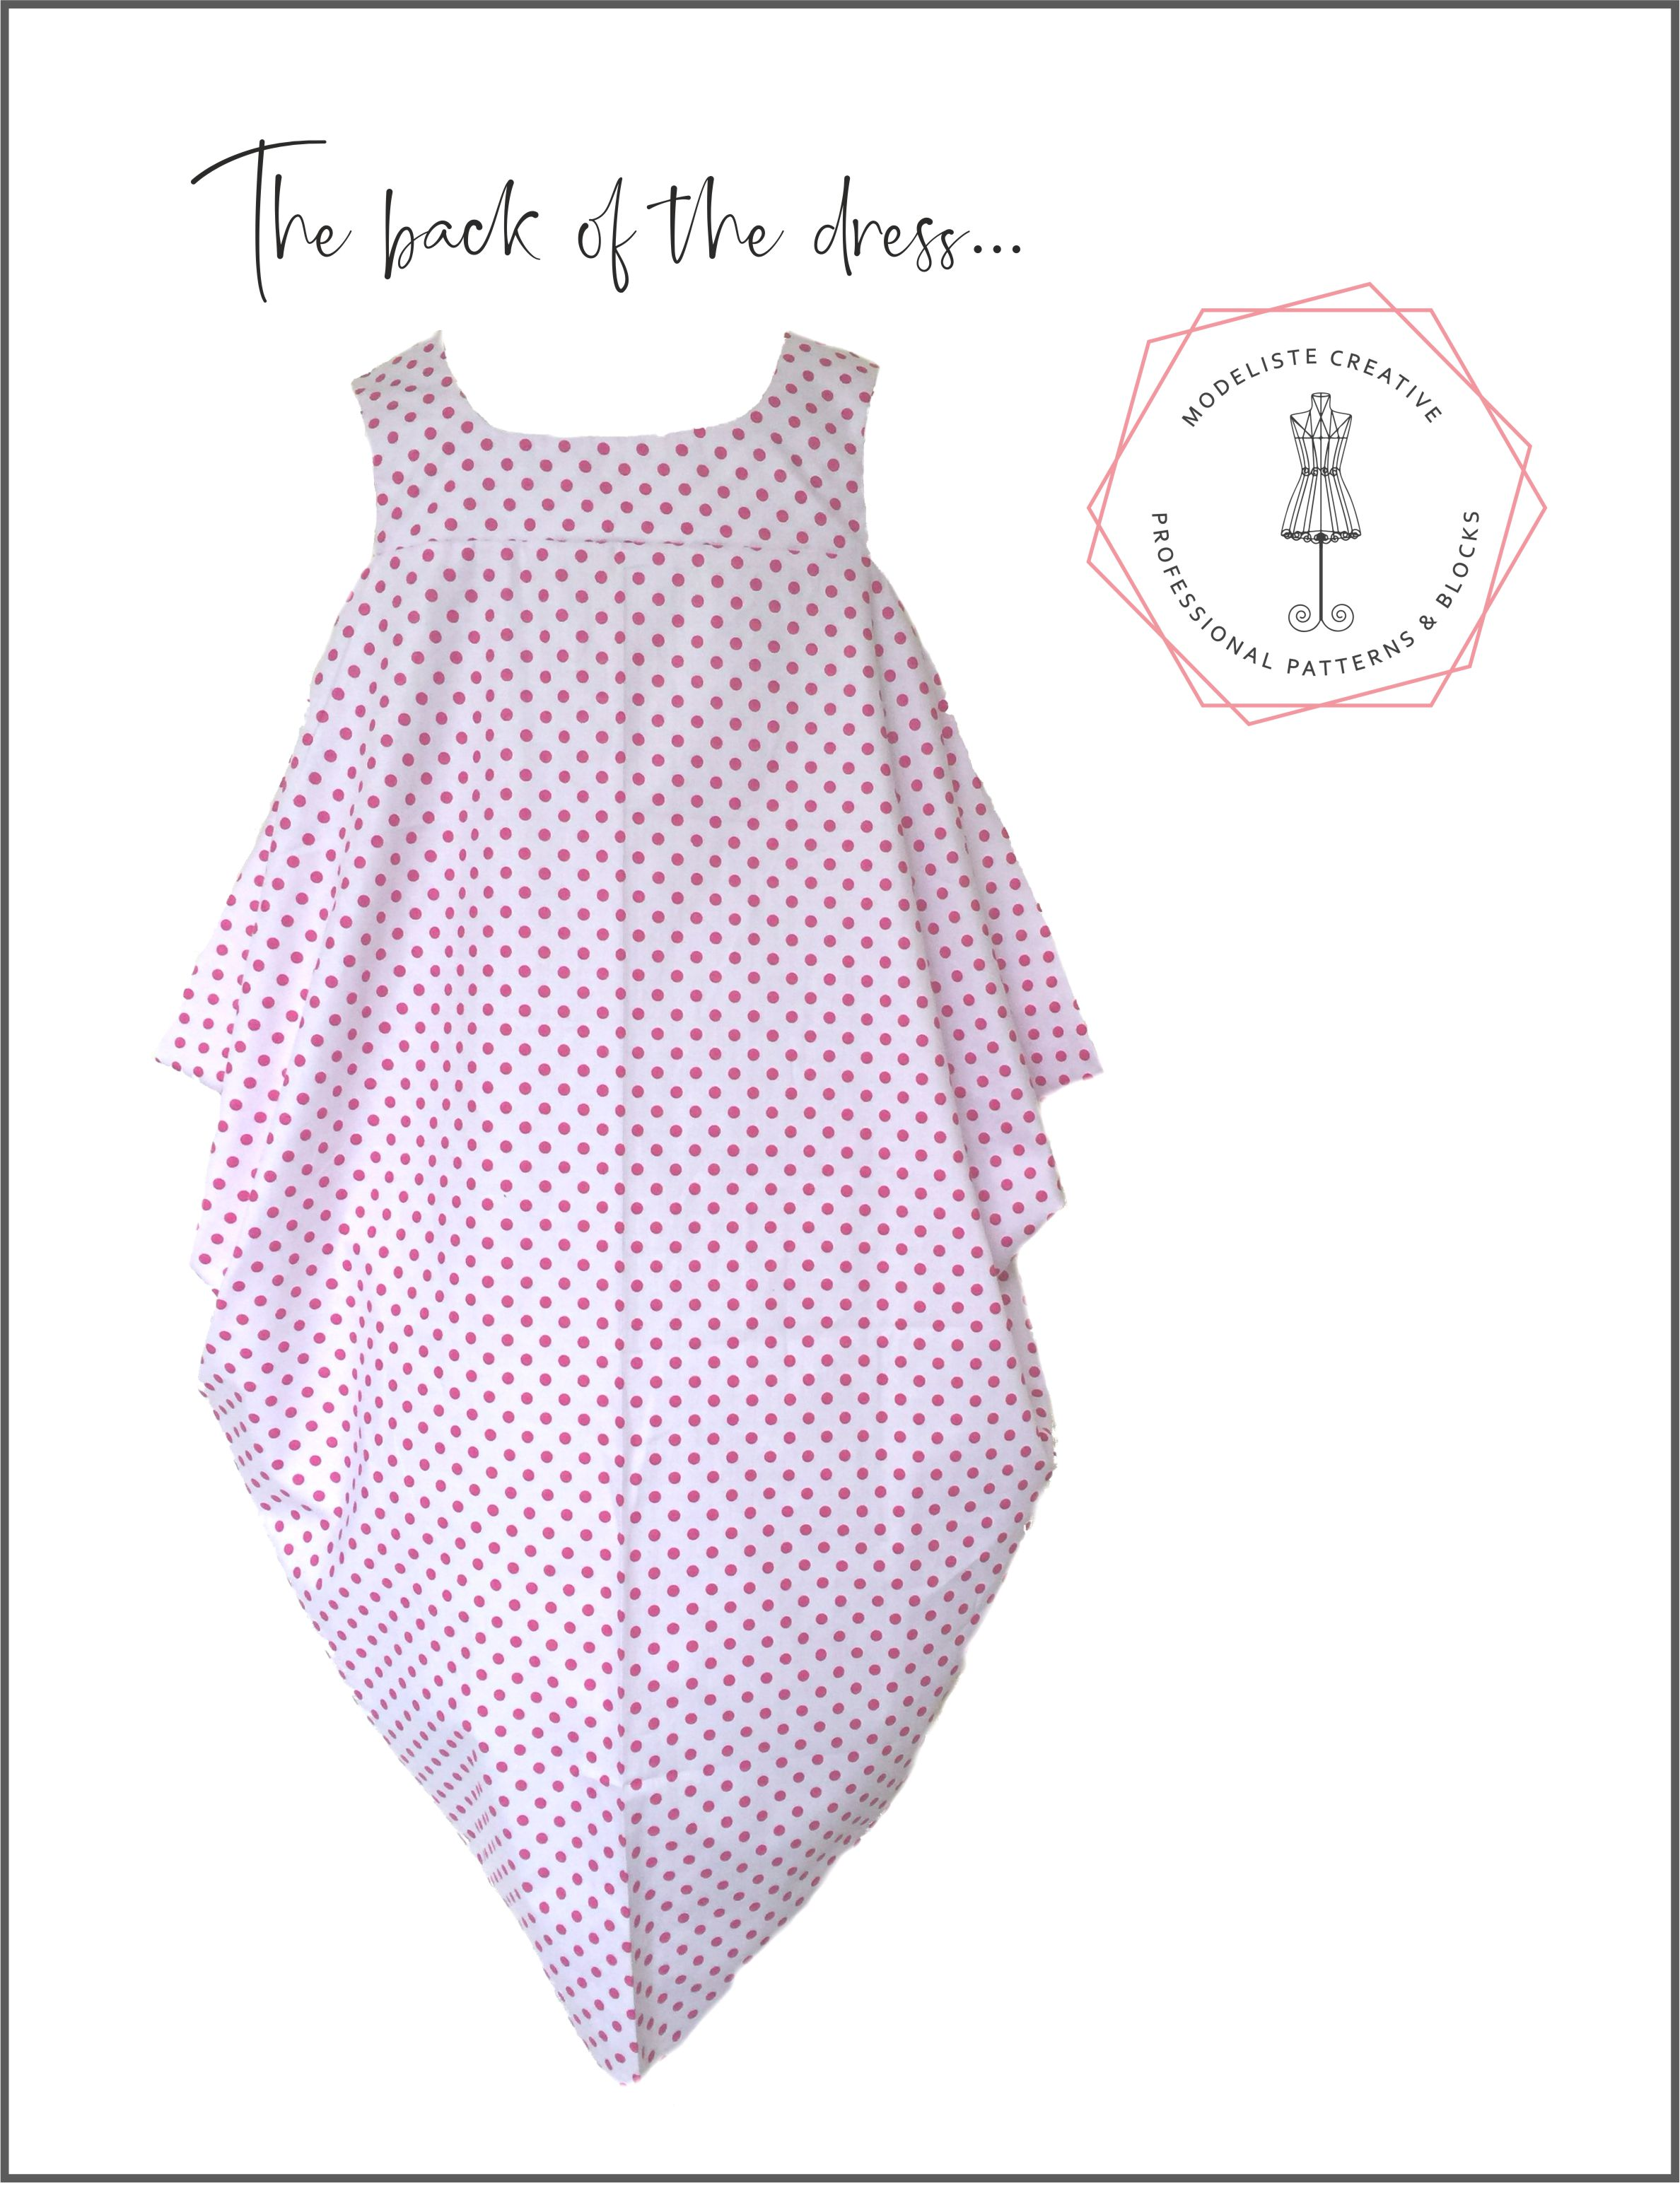 The Japanese Drape Dress Pdf Instant Download 2 Full Size A0 Sheets Print Yourself Modeliste Creative Design Cut Wear